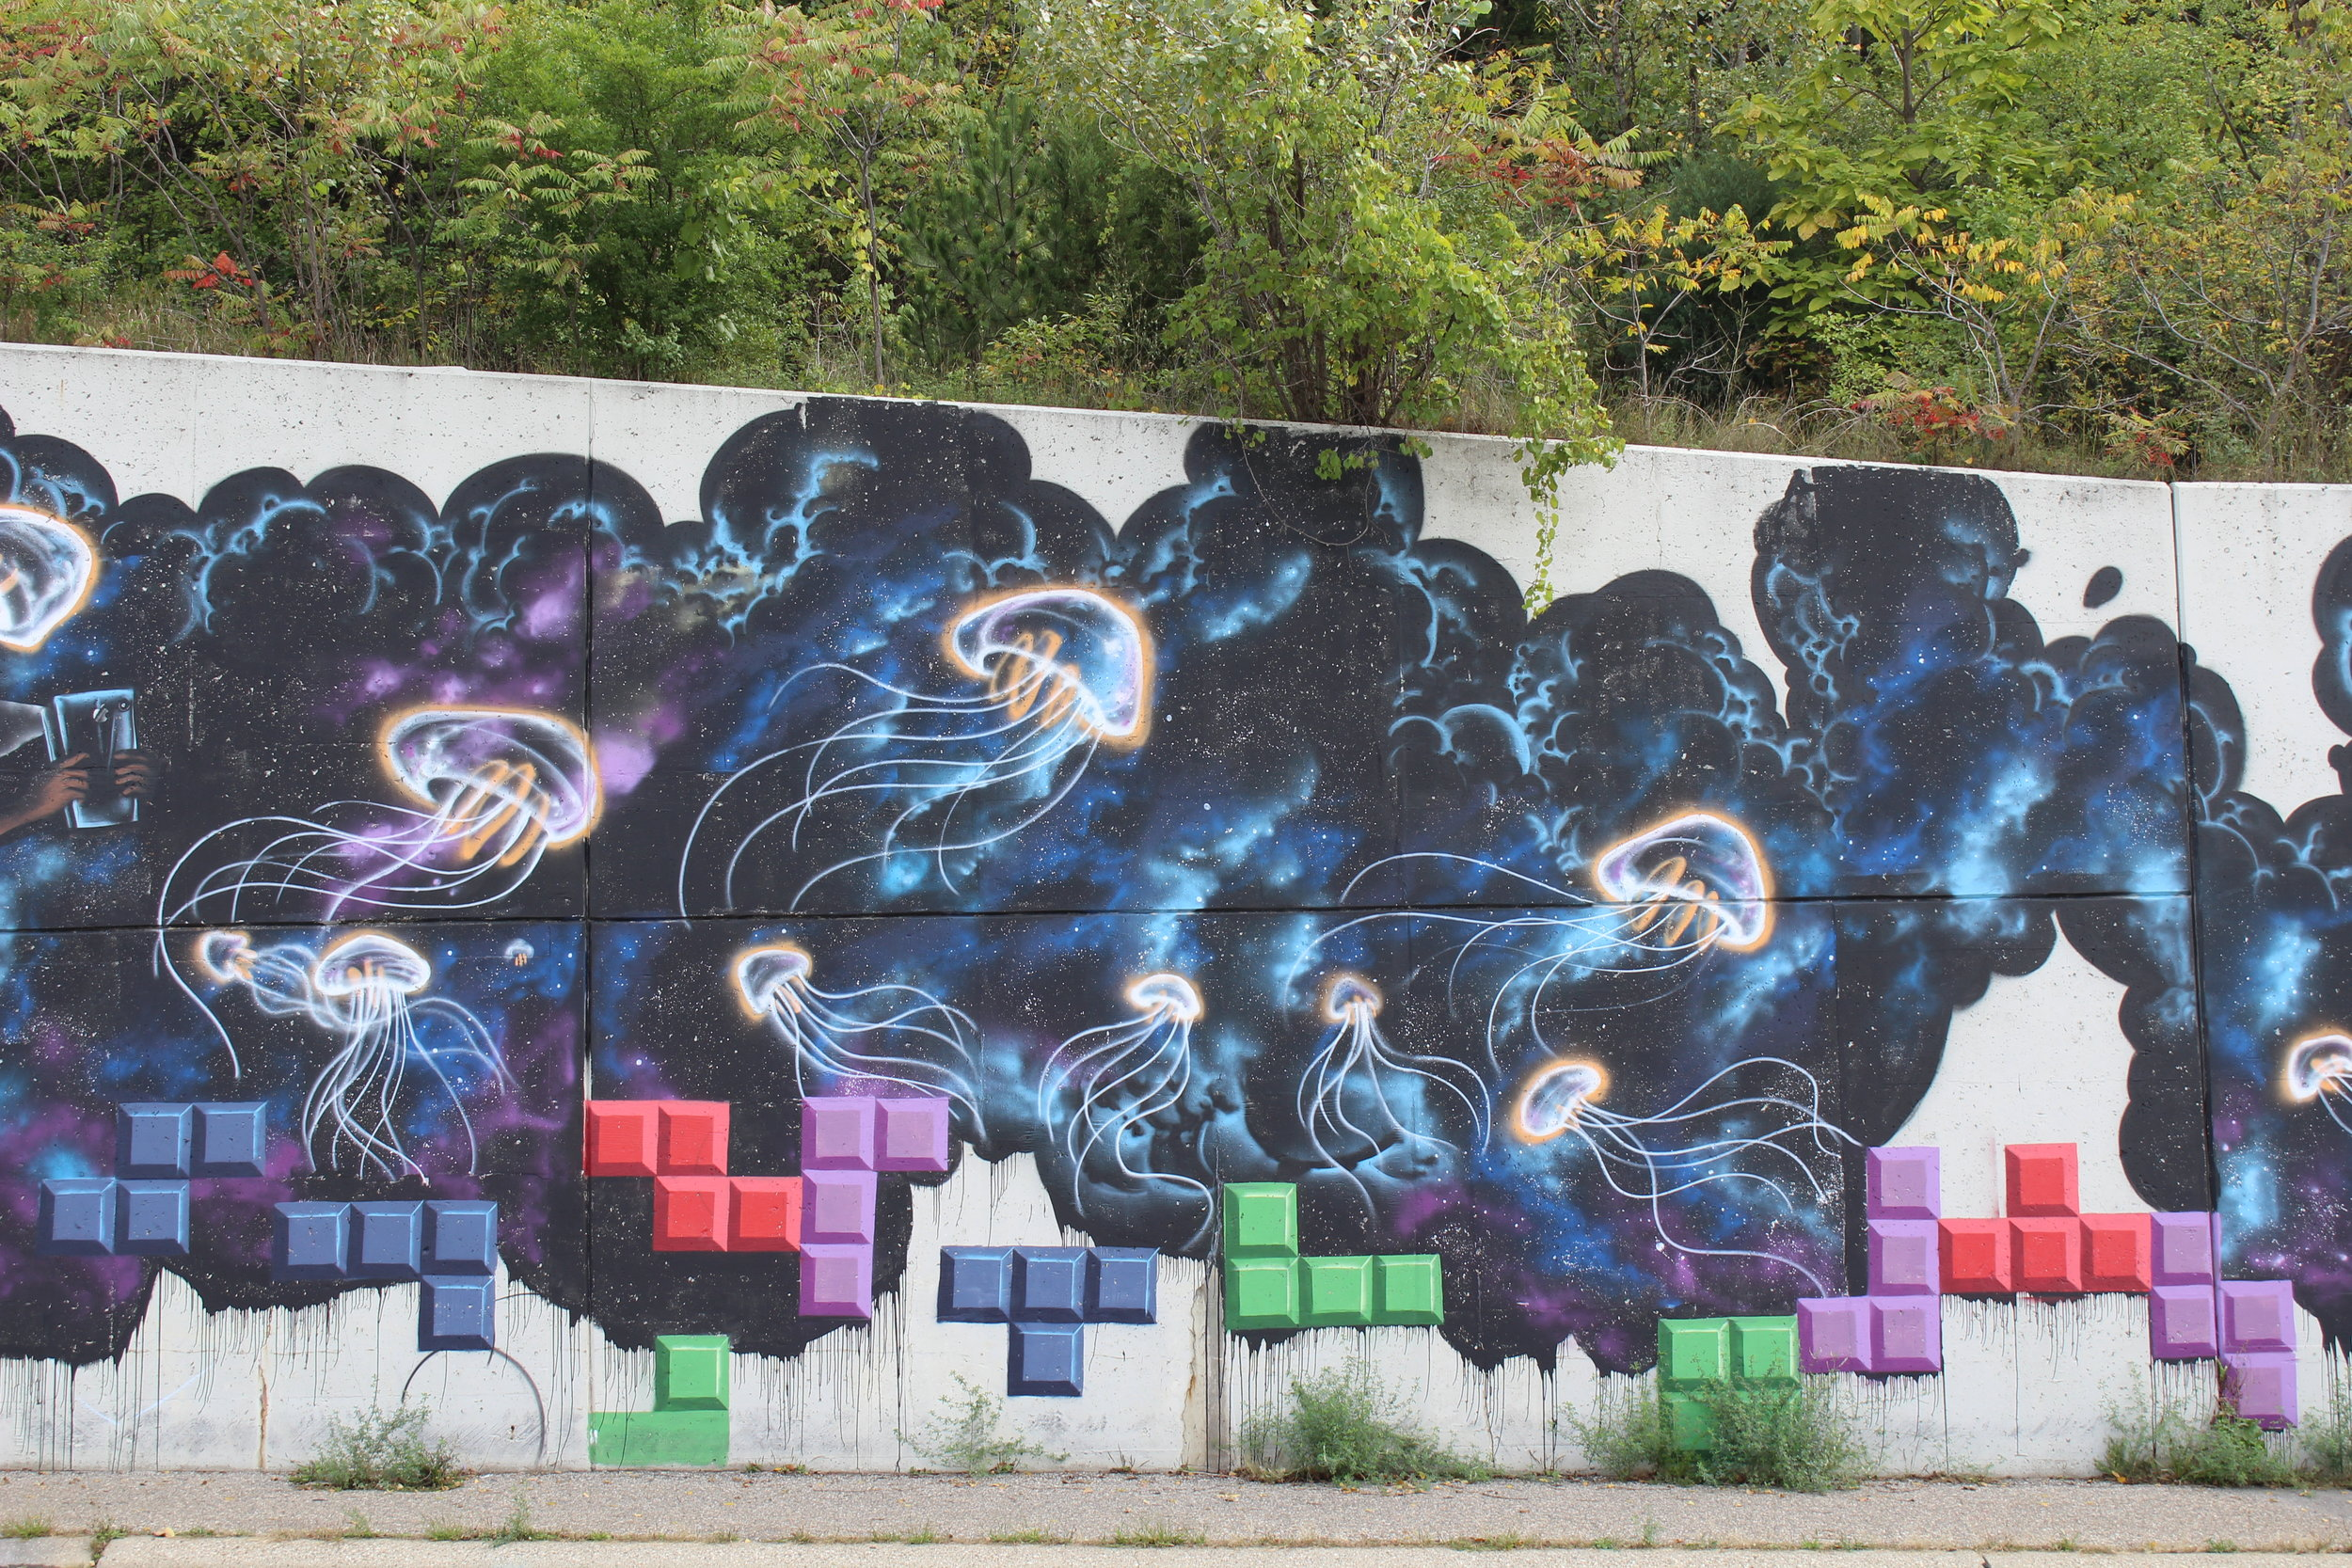 Space inspired mural on retaining wall of I-196